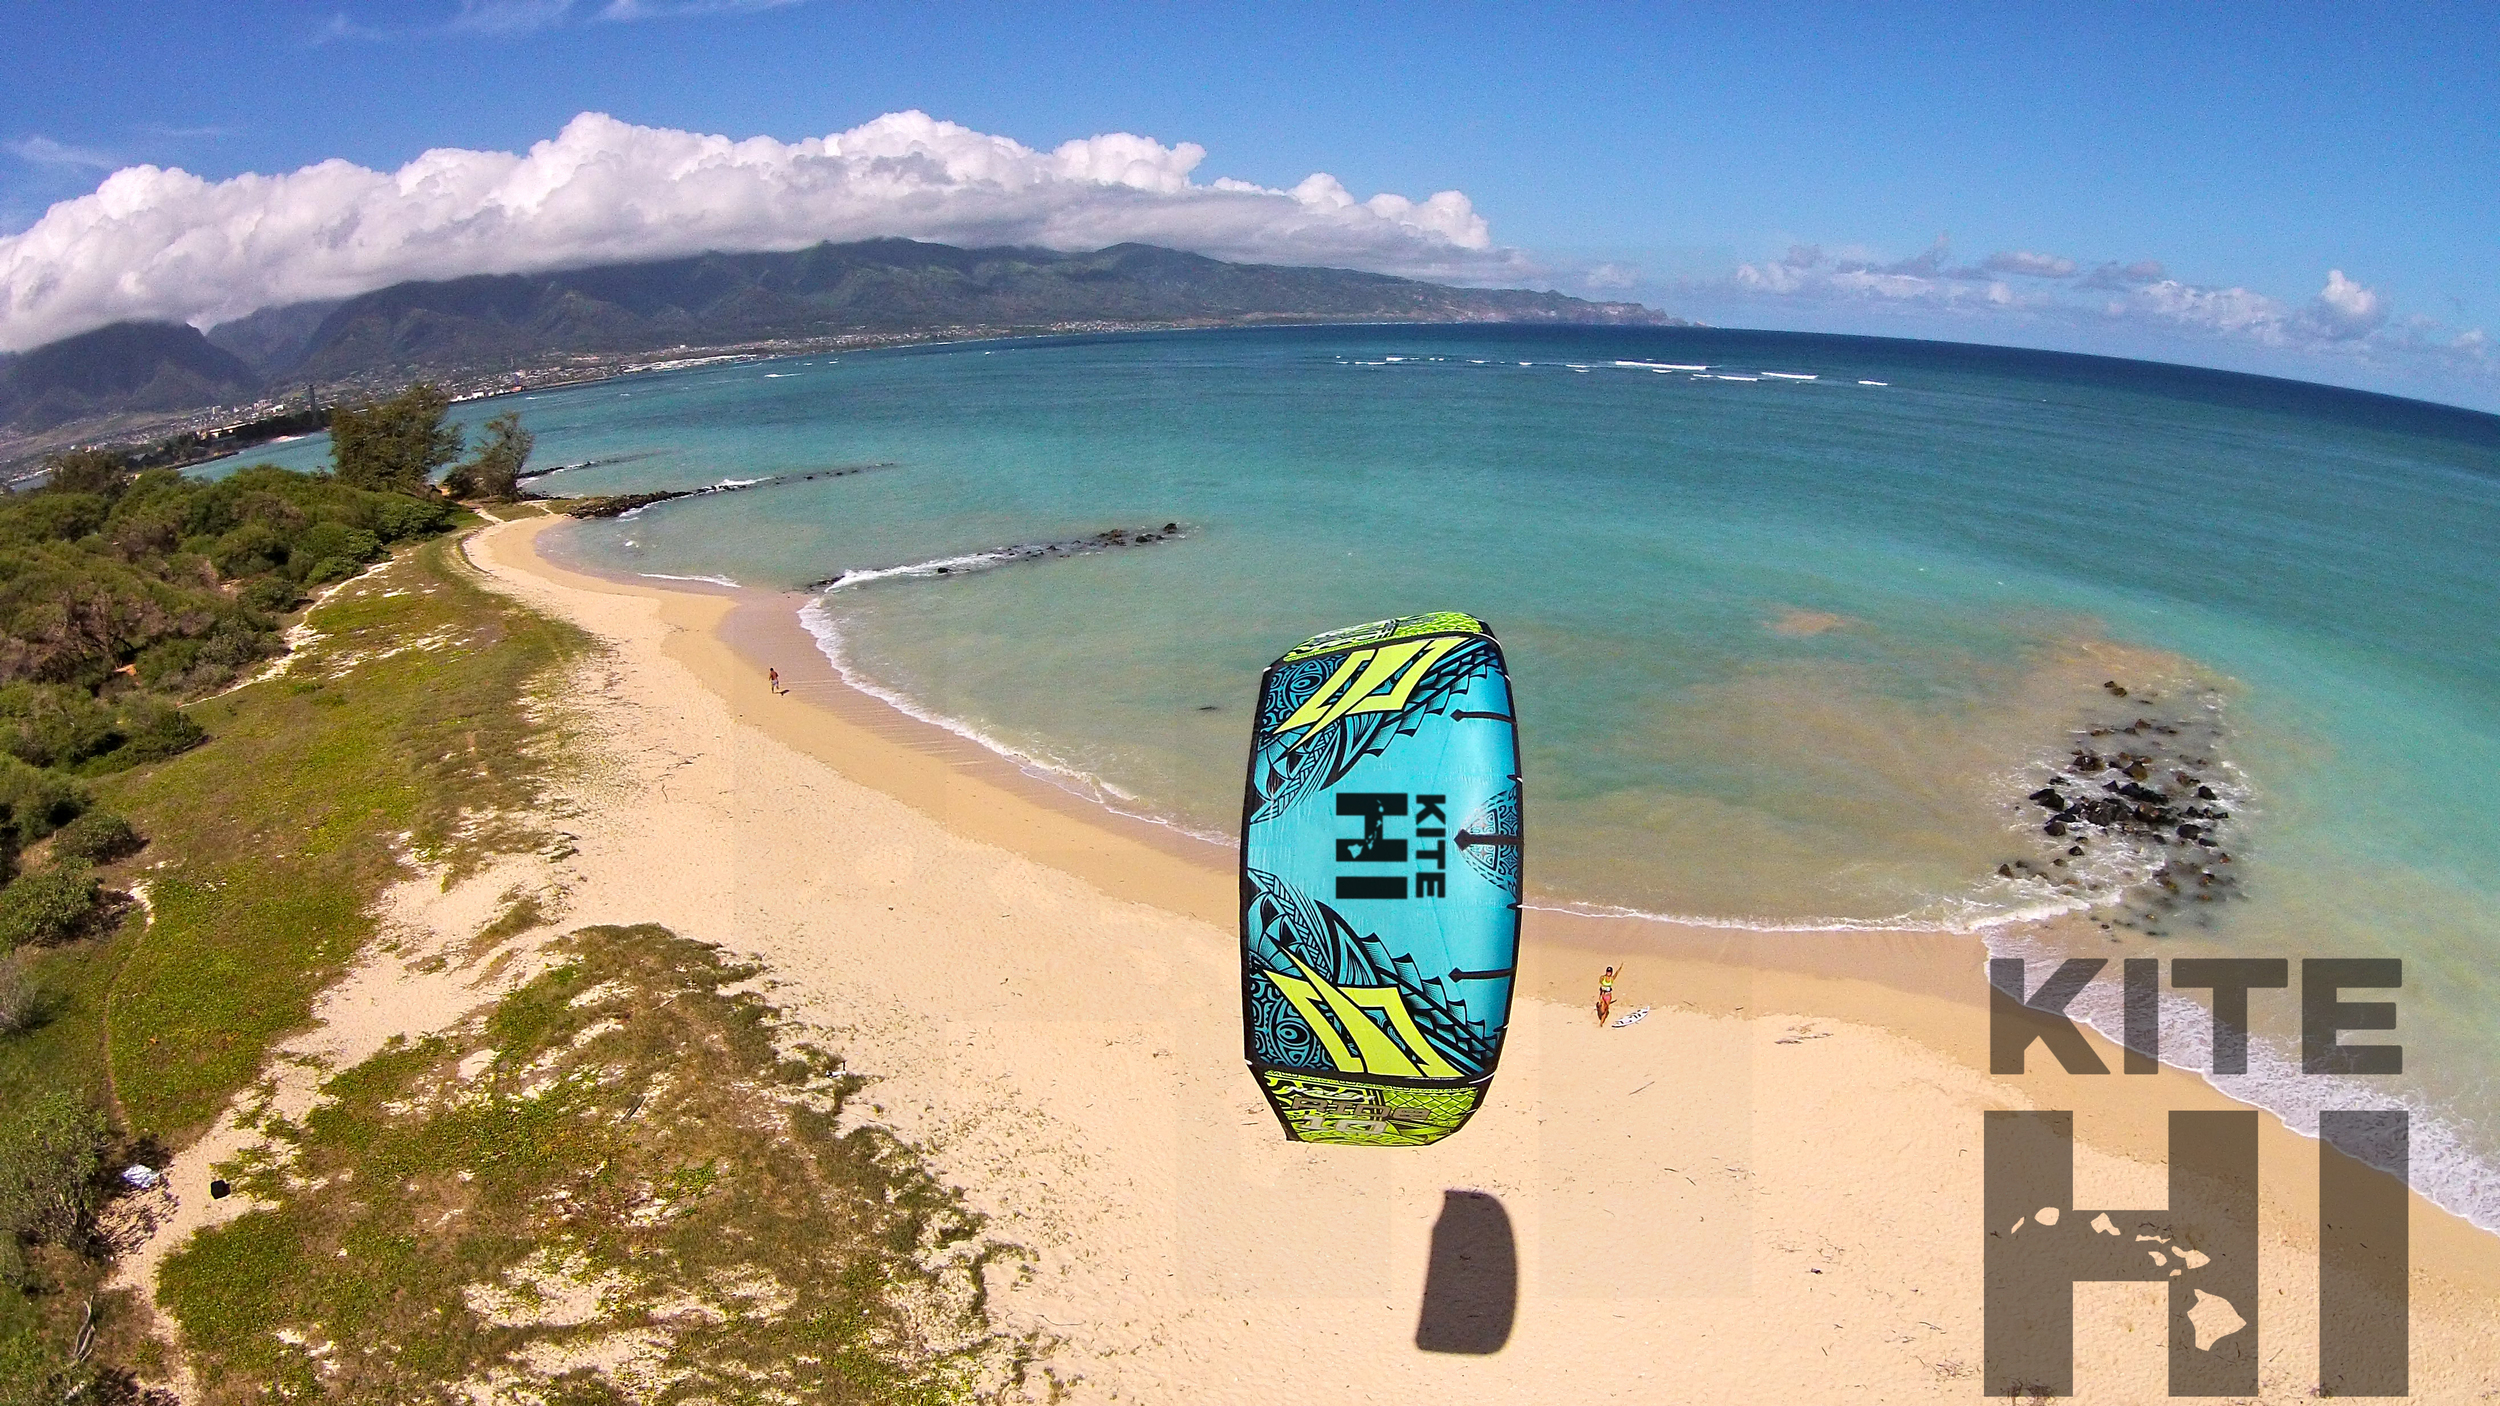 Raquel at Flash Beach over kite maui copy.jpg